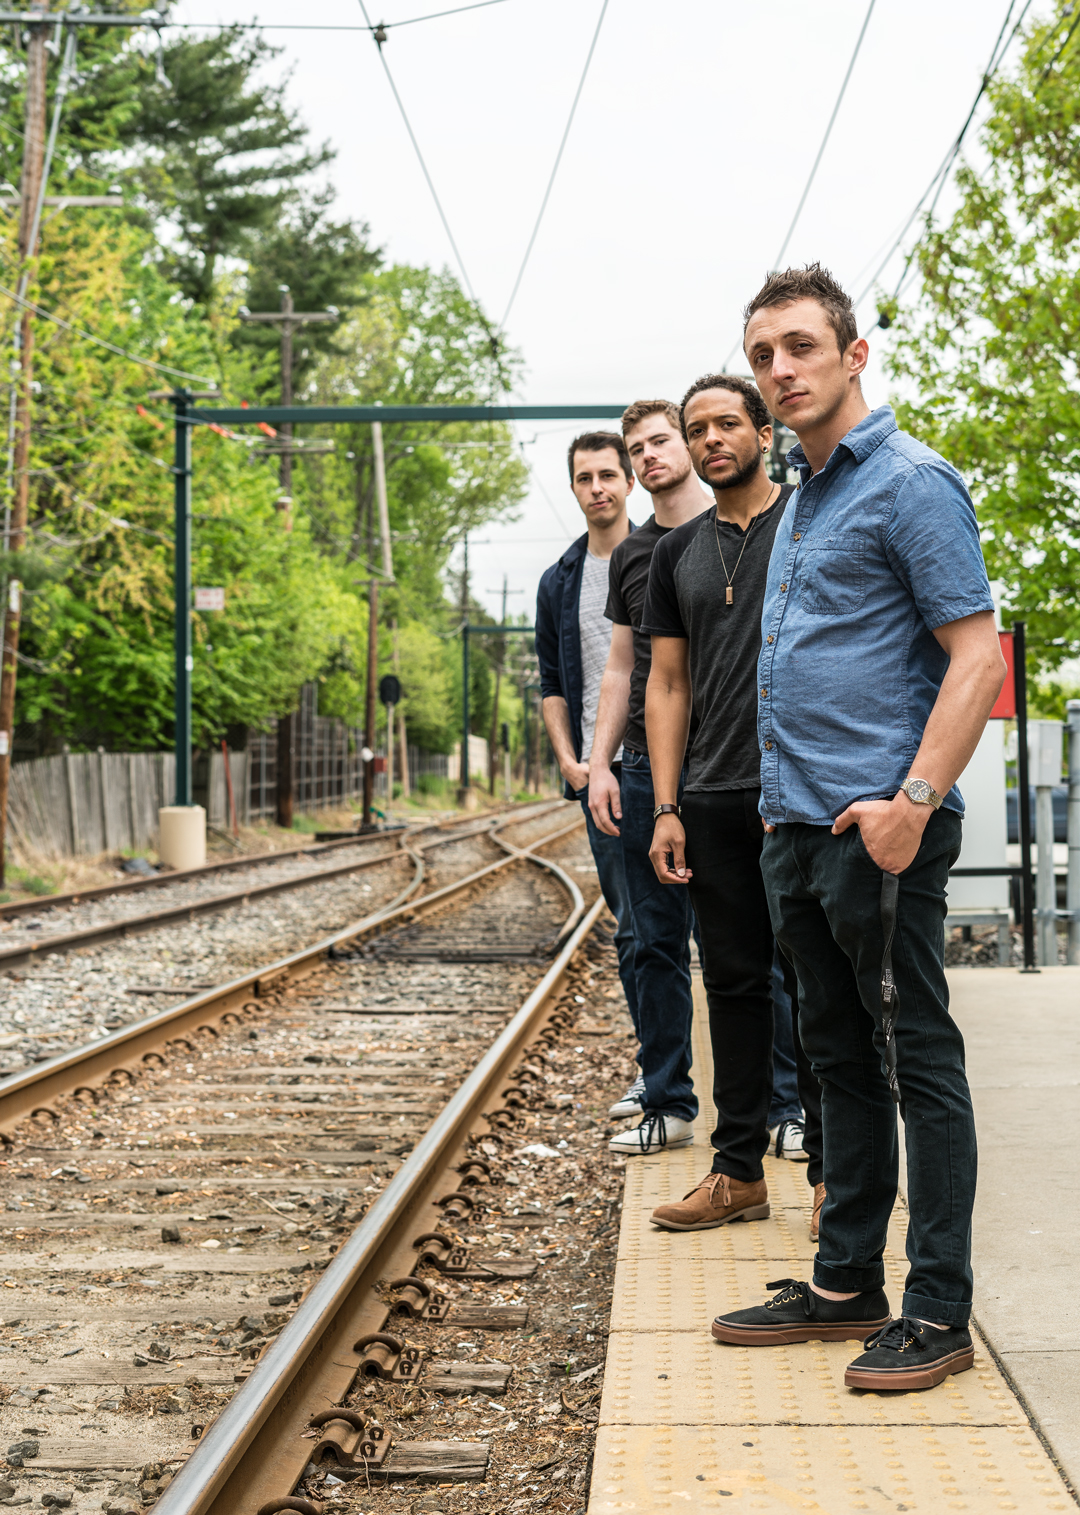 Multicultural bandmembers standing in line next to train tracks at a train station.